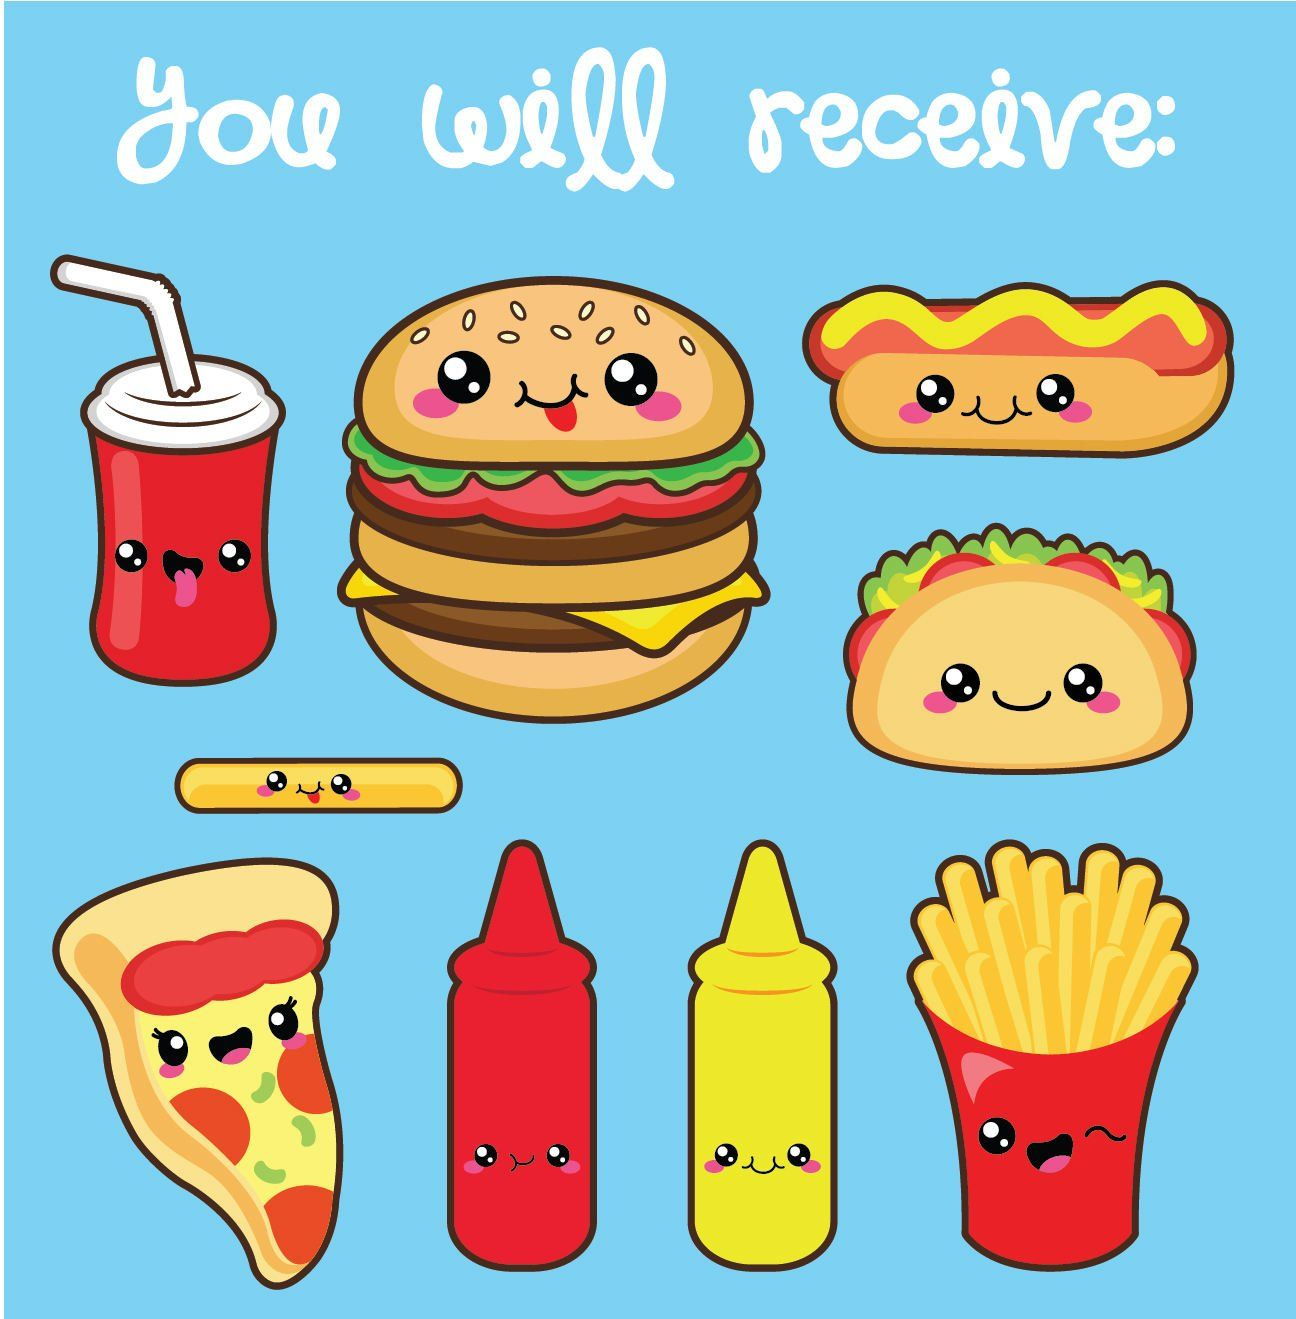 Kawaii clipart, kawaii fast food clipart, kawaii food.